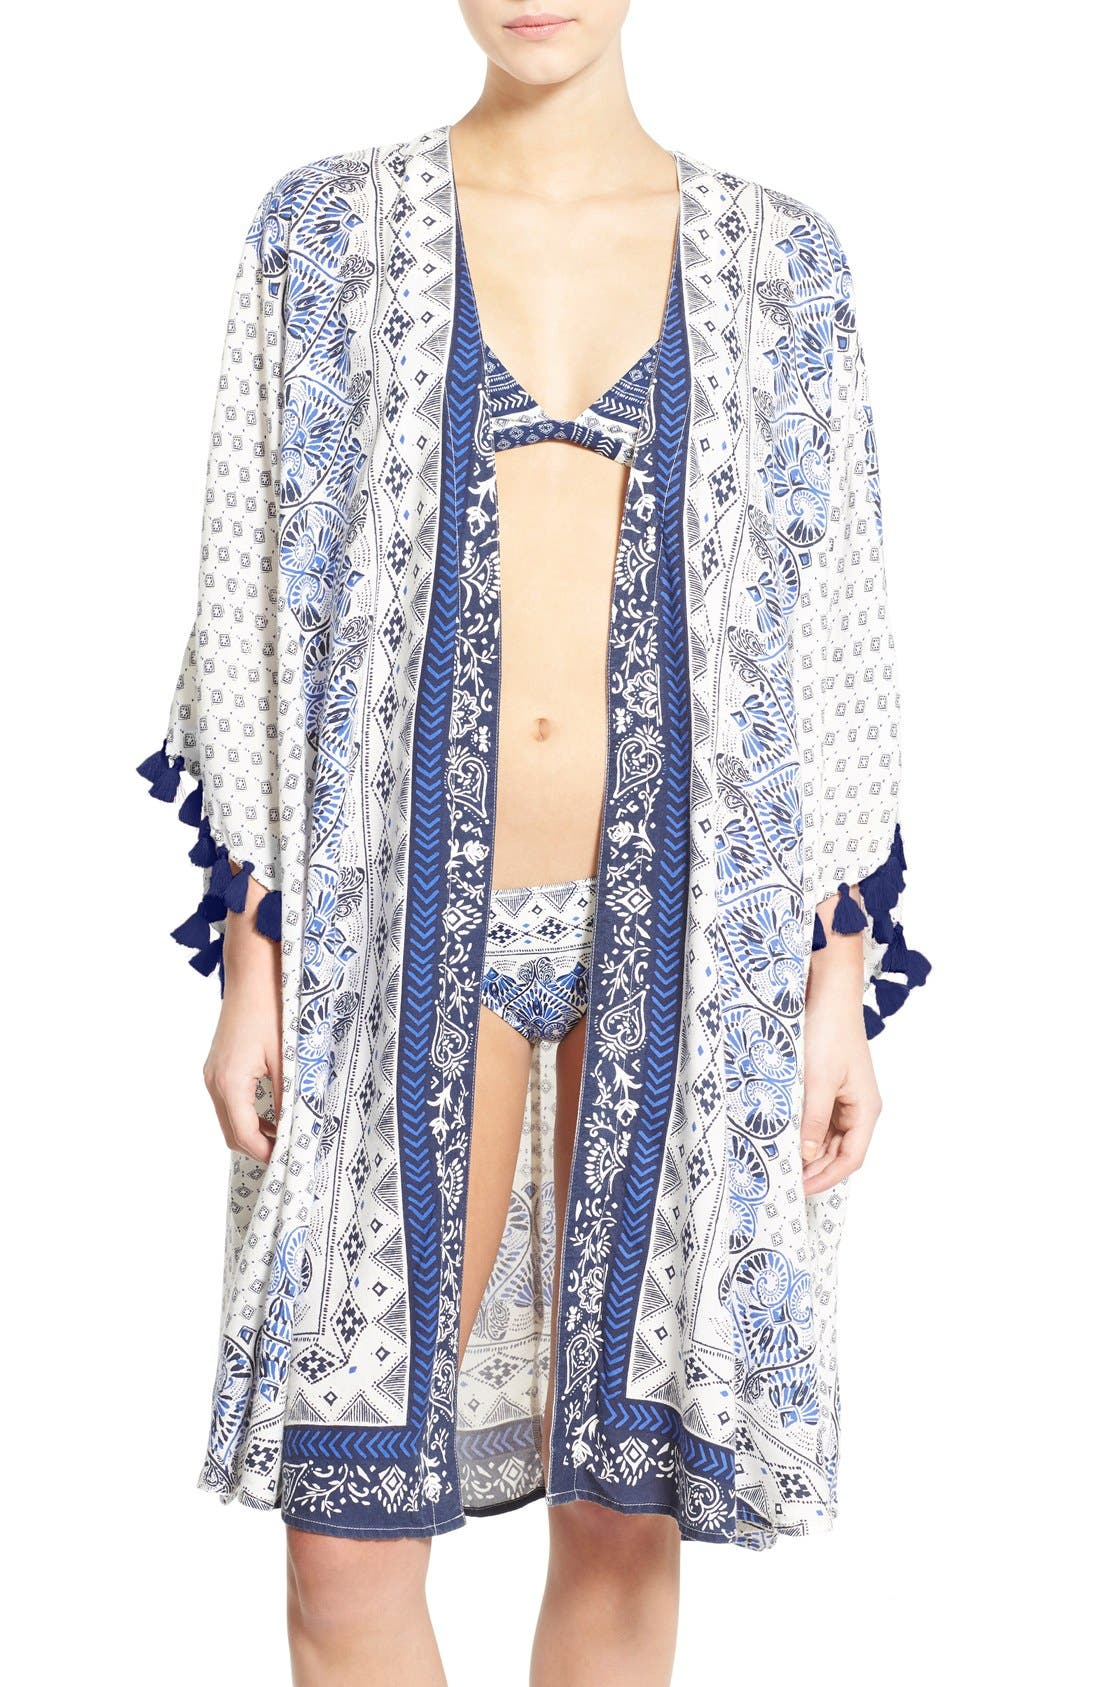 Alternate Image 1 Selected - Roxy 'Souk' Paisley Cover-Up